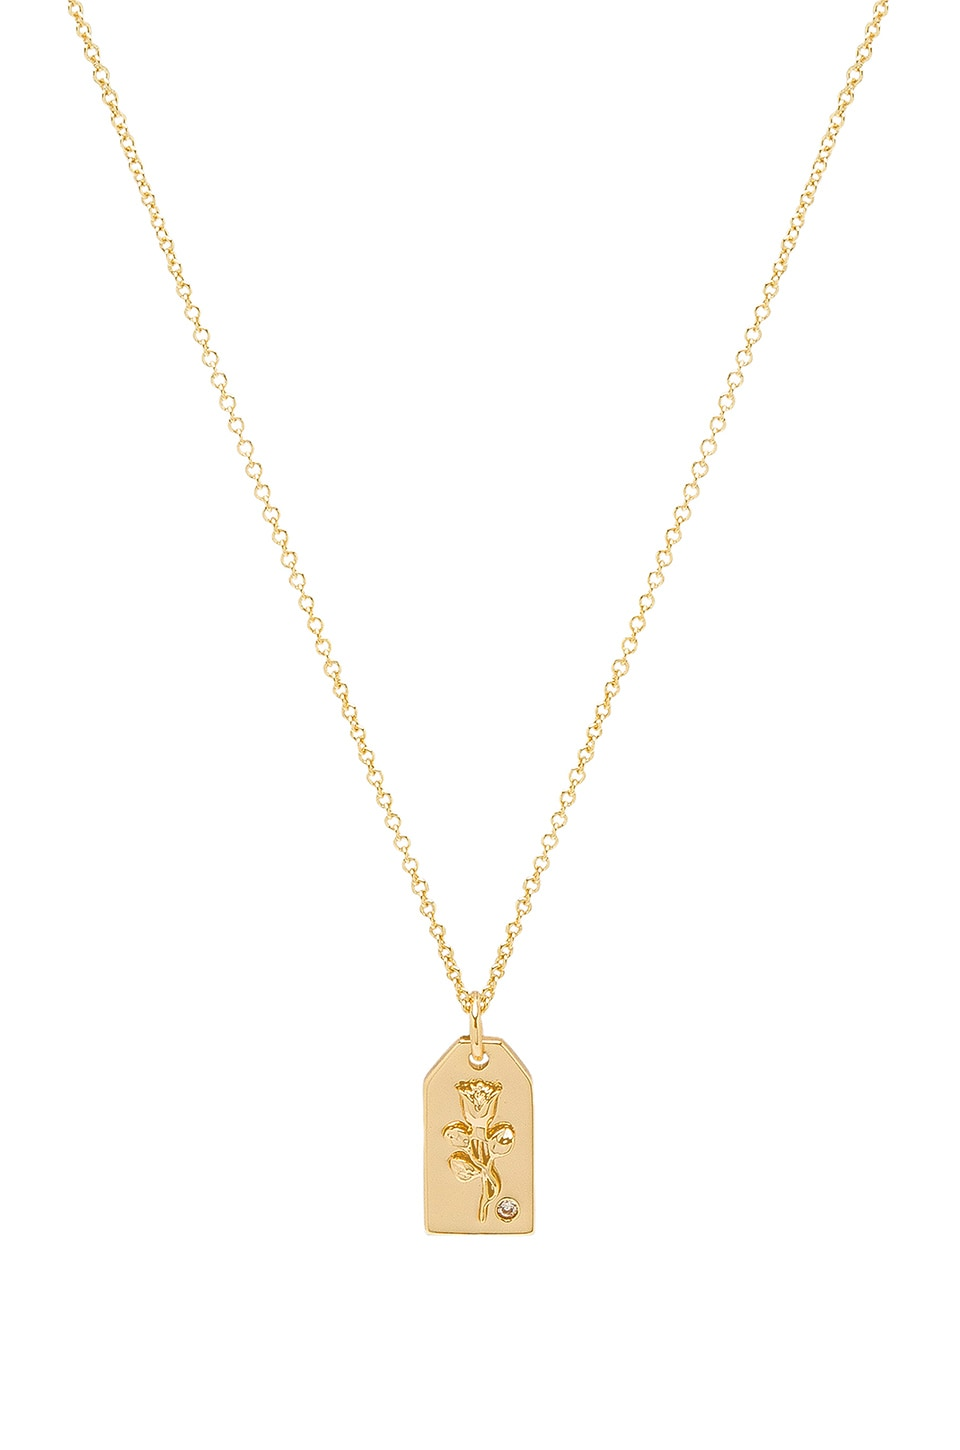 LULU DK X WEWOREWHAT ROSE ENVELOPE NECKLACE